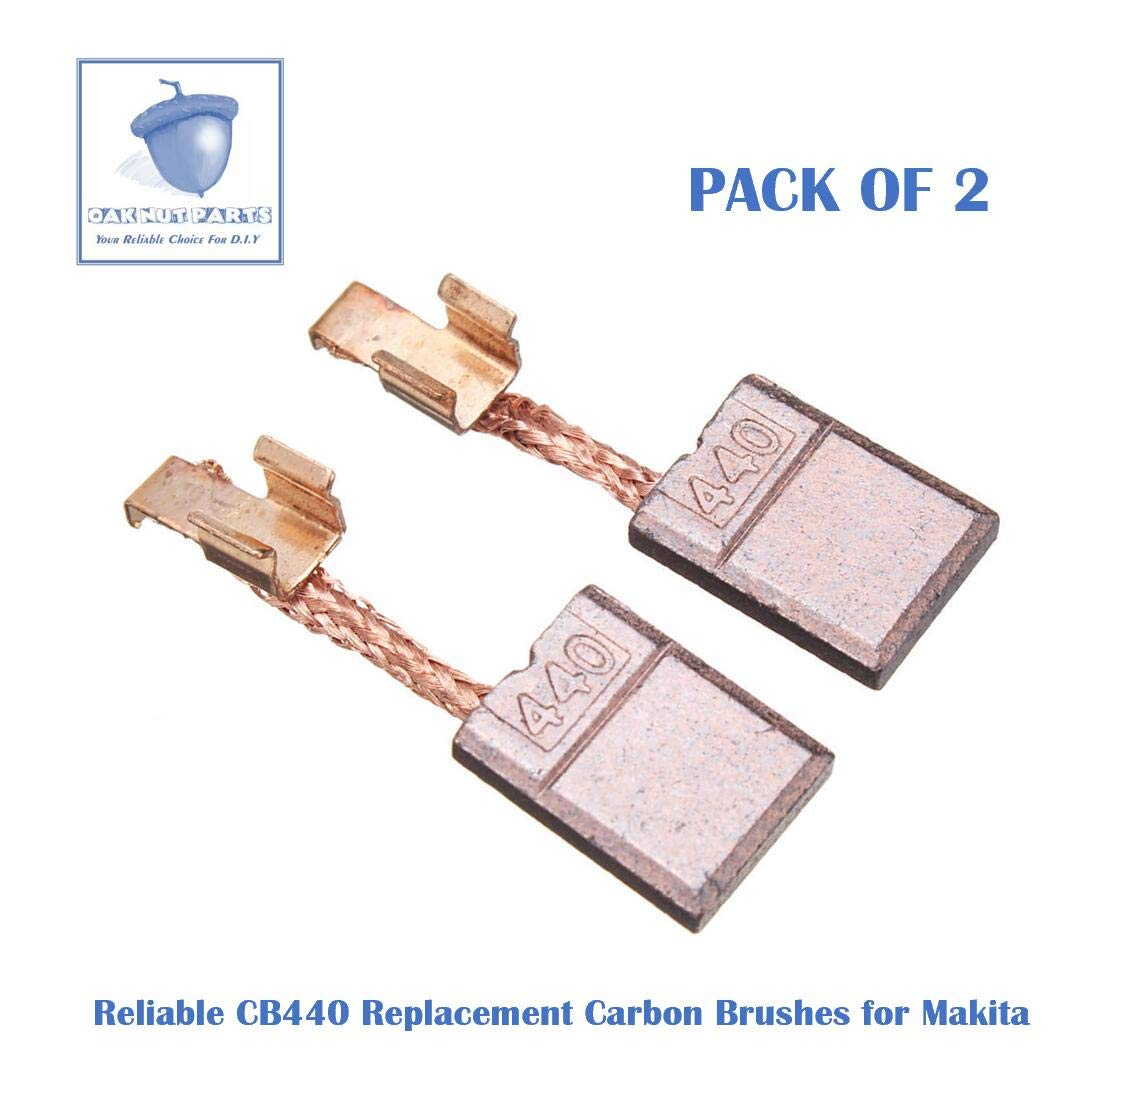 2pcs Reliable Cb440 Carbon Brushes Replacement For Makita...